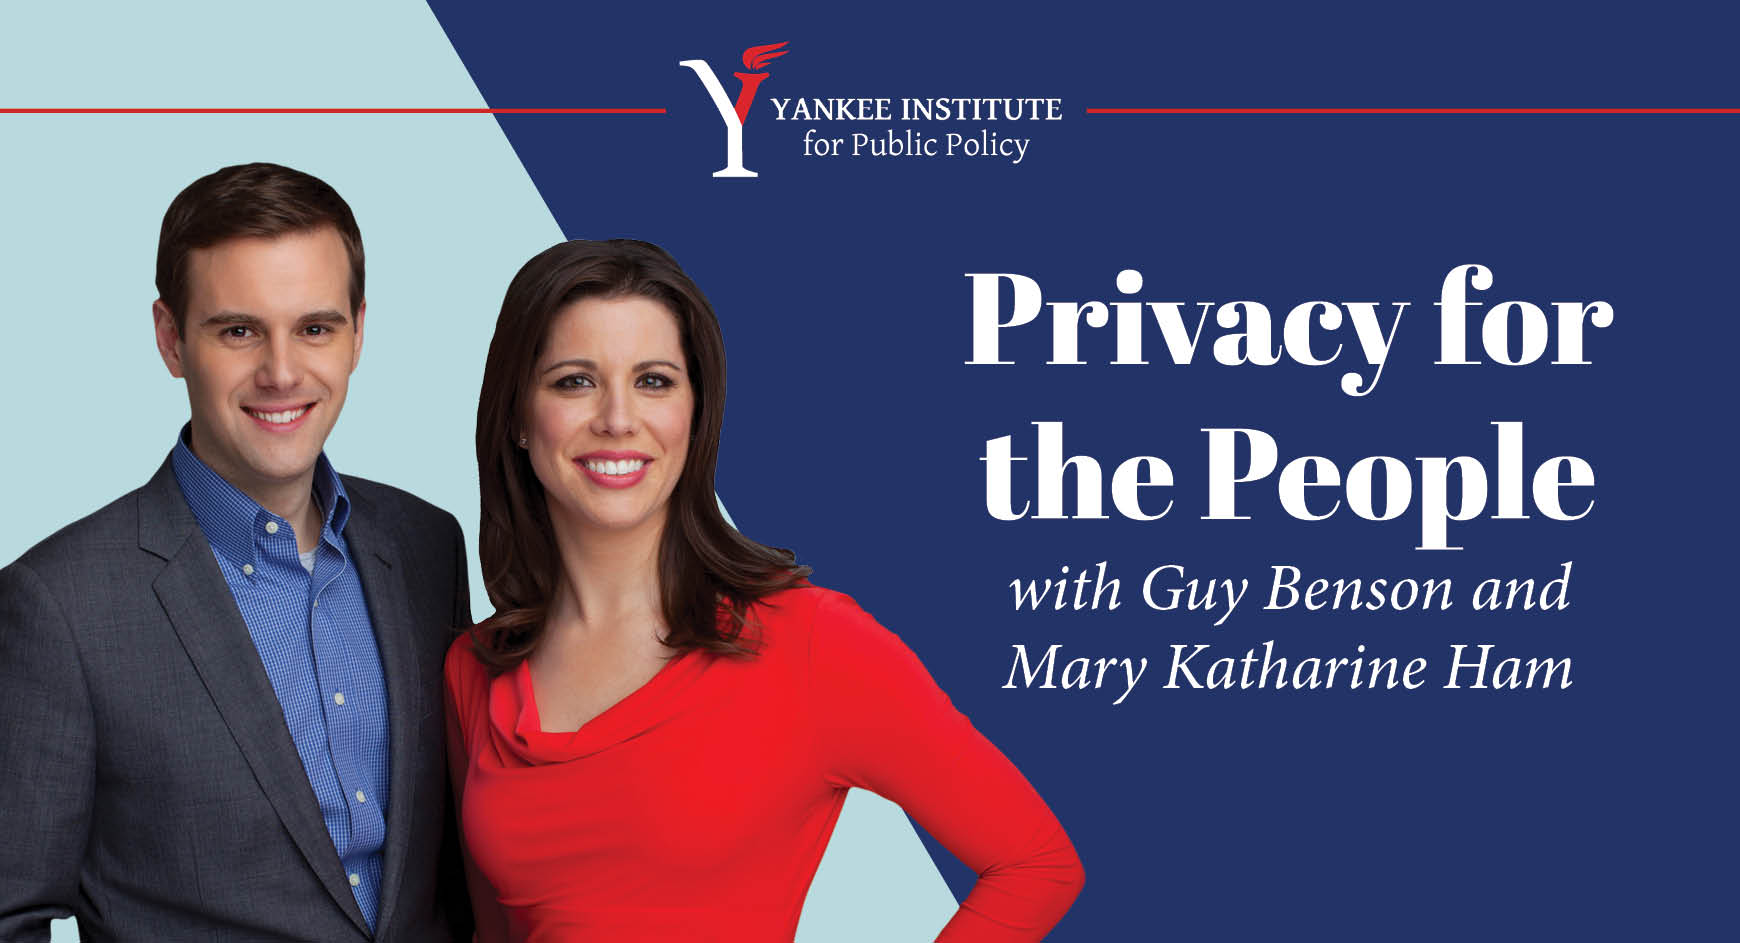 Privacy for the People with Guy Benson and Mary Katharine Ham